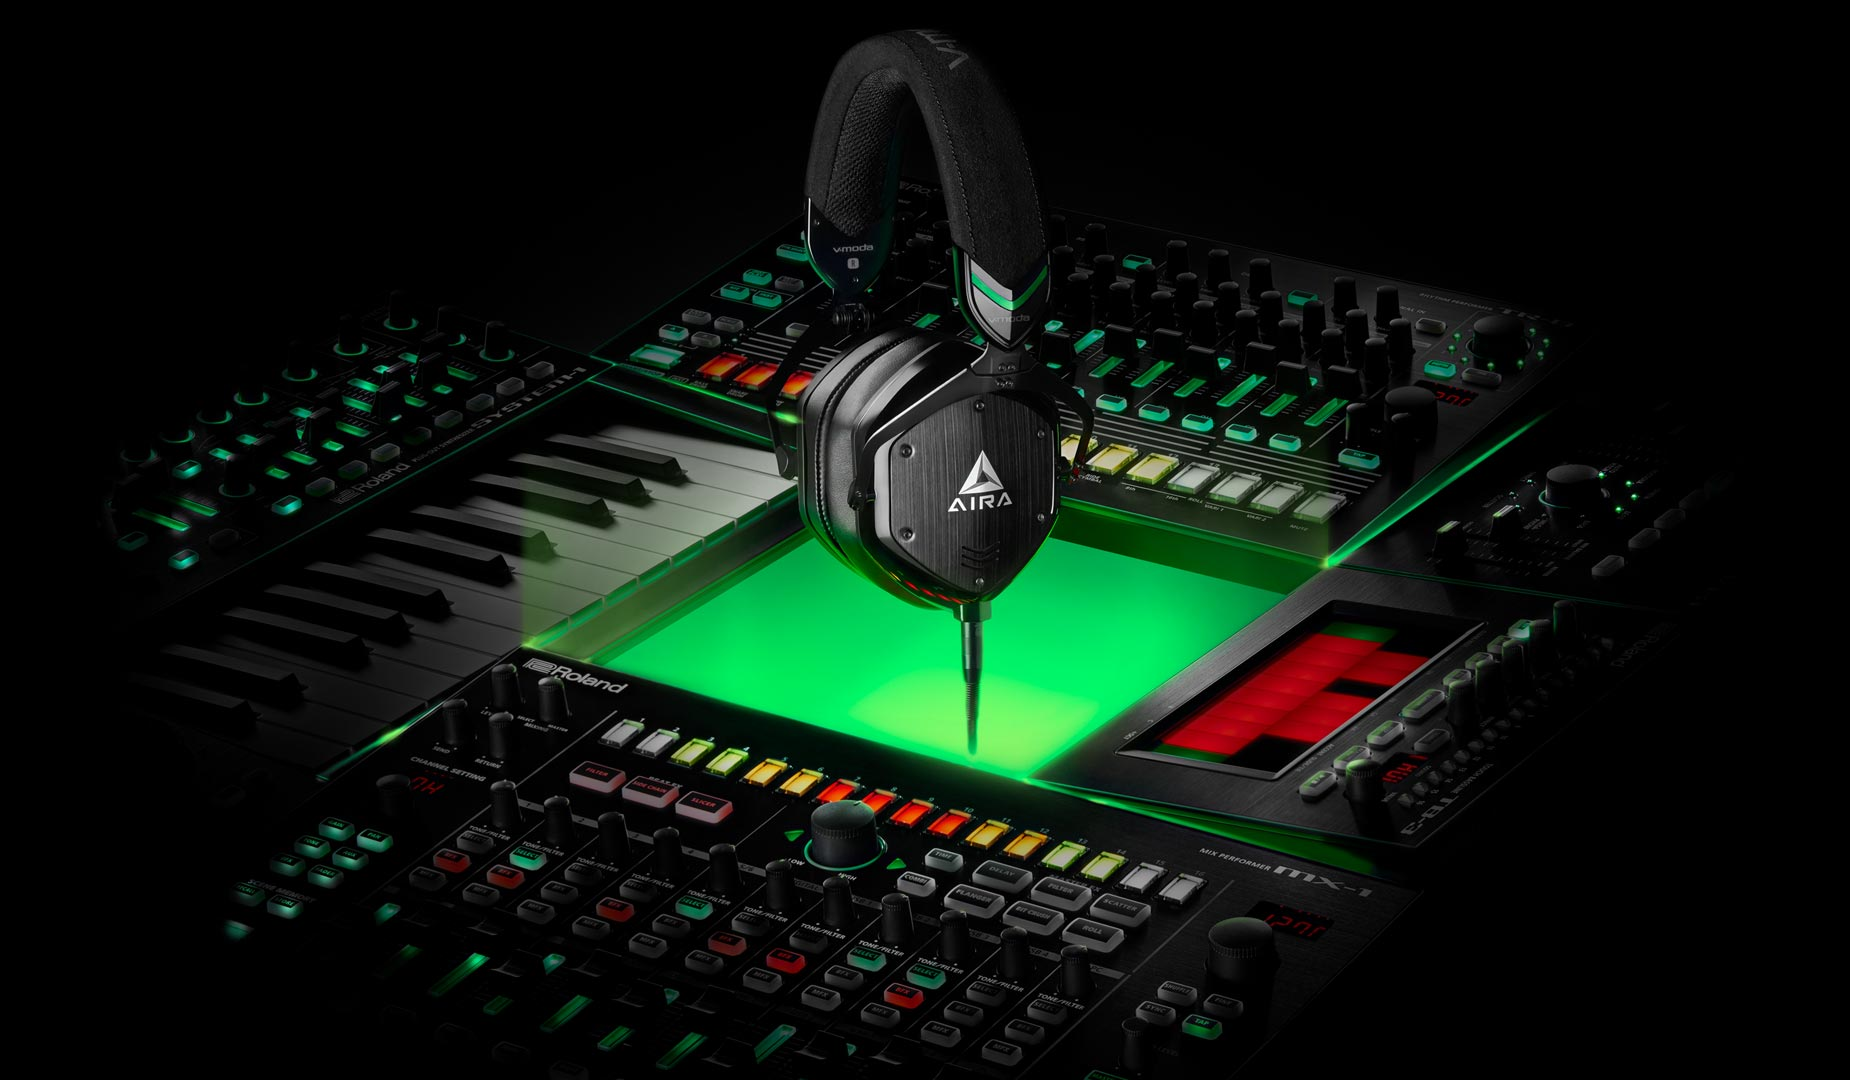 Aira Headphones Floating Over Keyboards